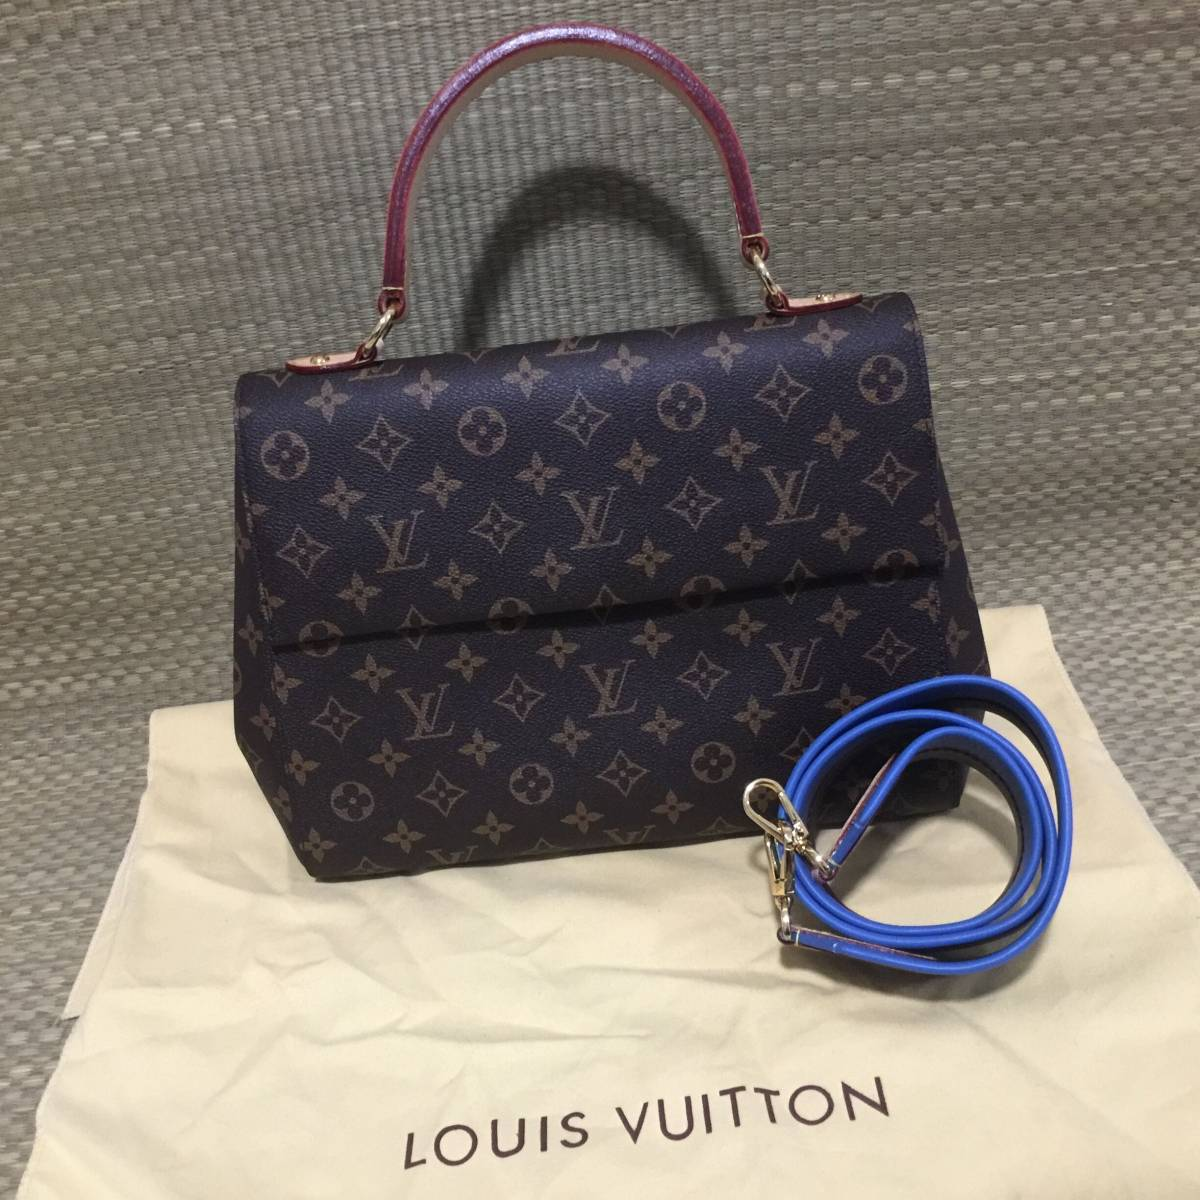 LOUIS VUITTON ルイヴィトン 2WAY